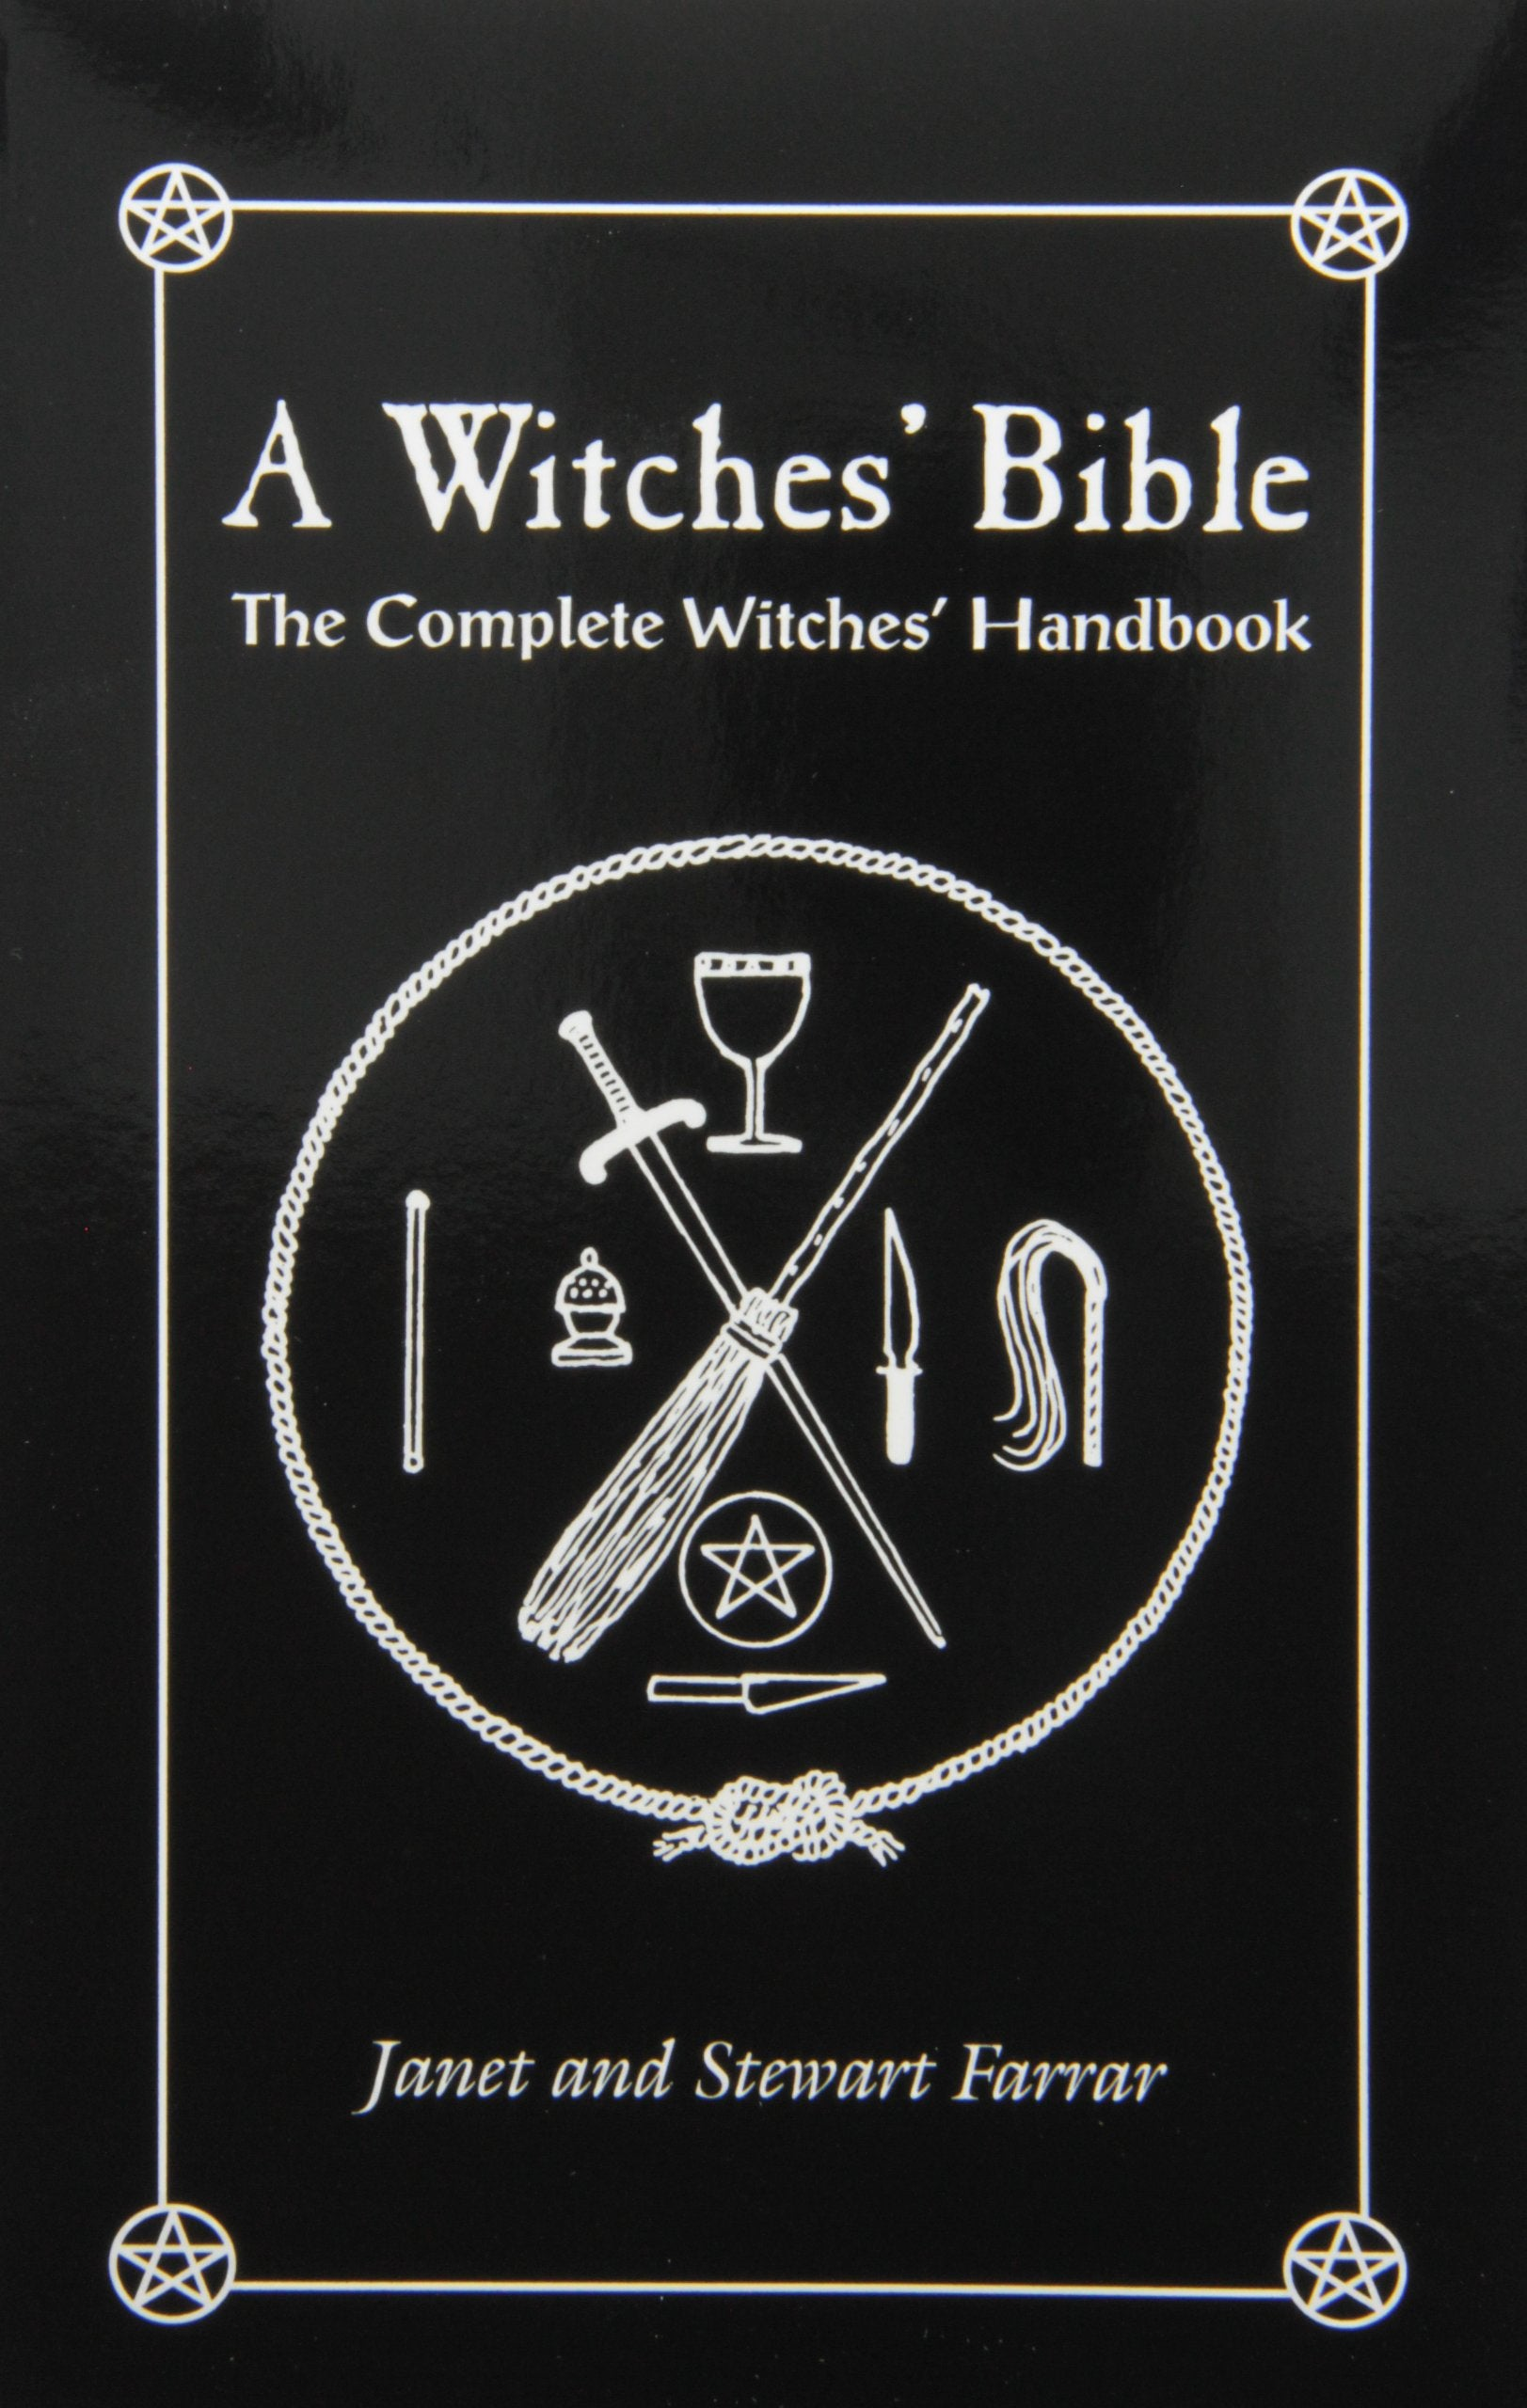 Witches' Bible, The Complete Witches' Handbook by Janet and Stewart Farrar